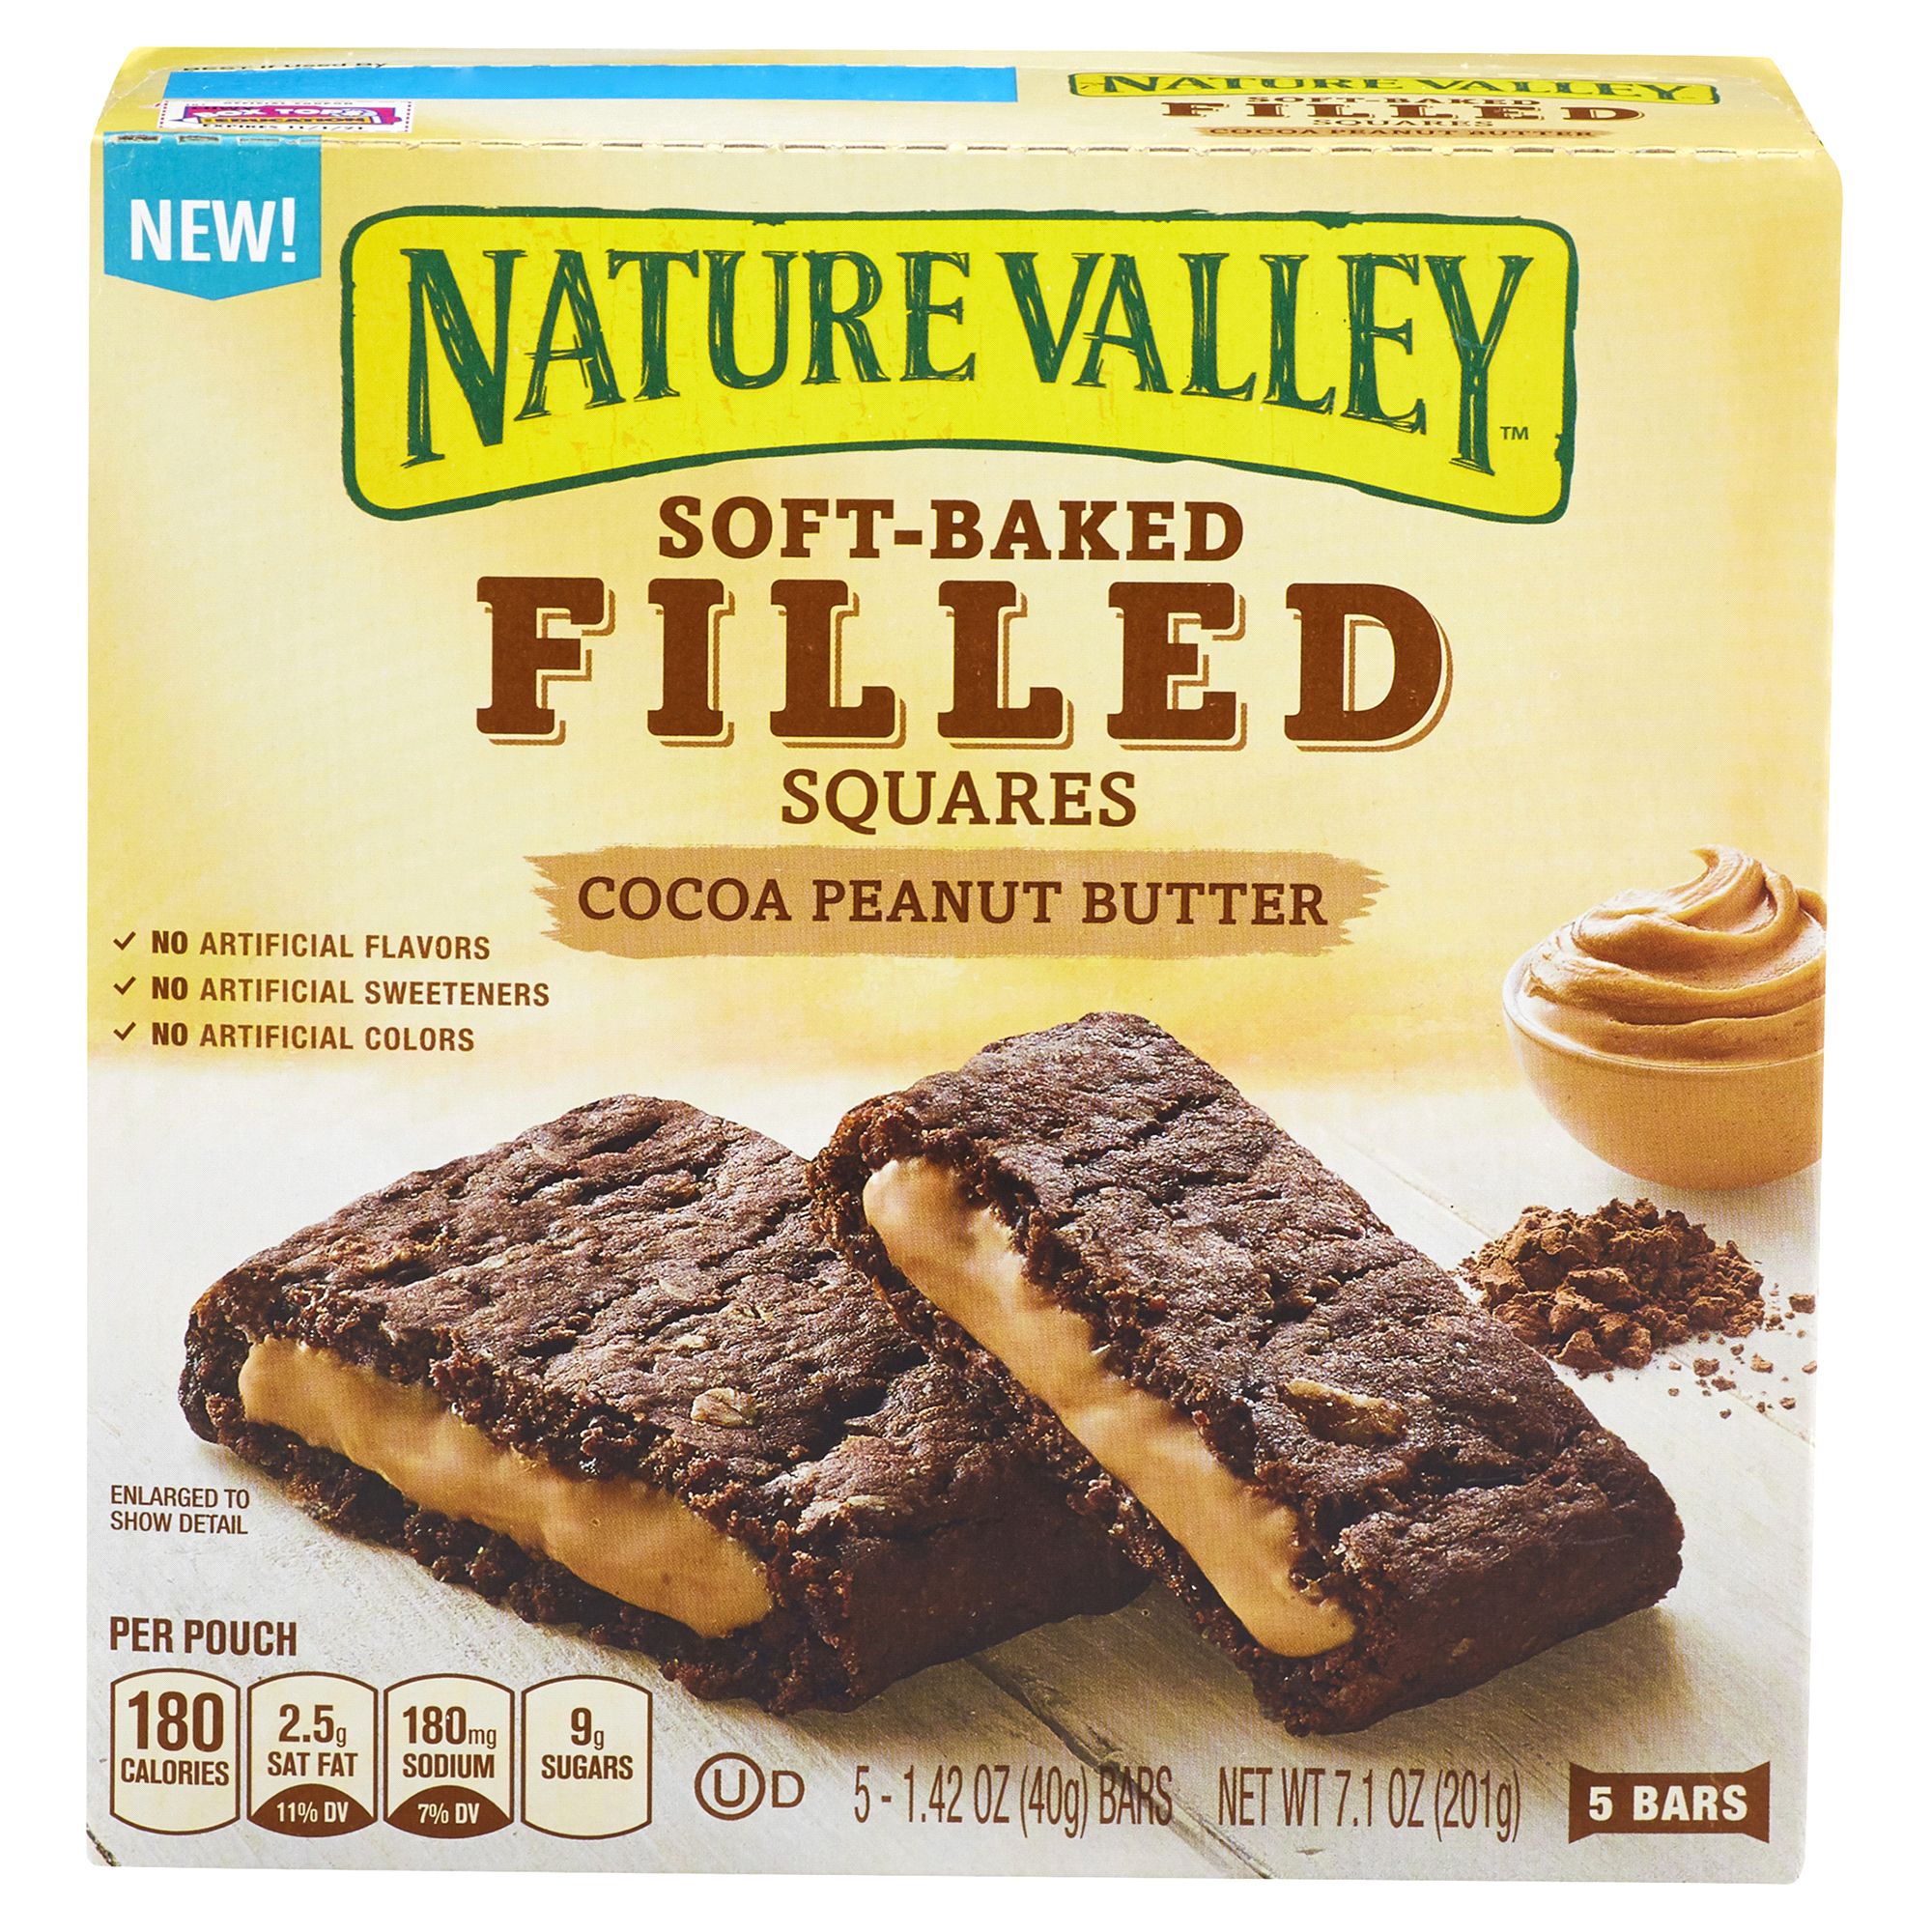 Nature Valley Soft Baked Filled Squares Cocoa Peanut Butter 5 x 1 42